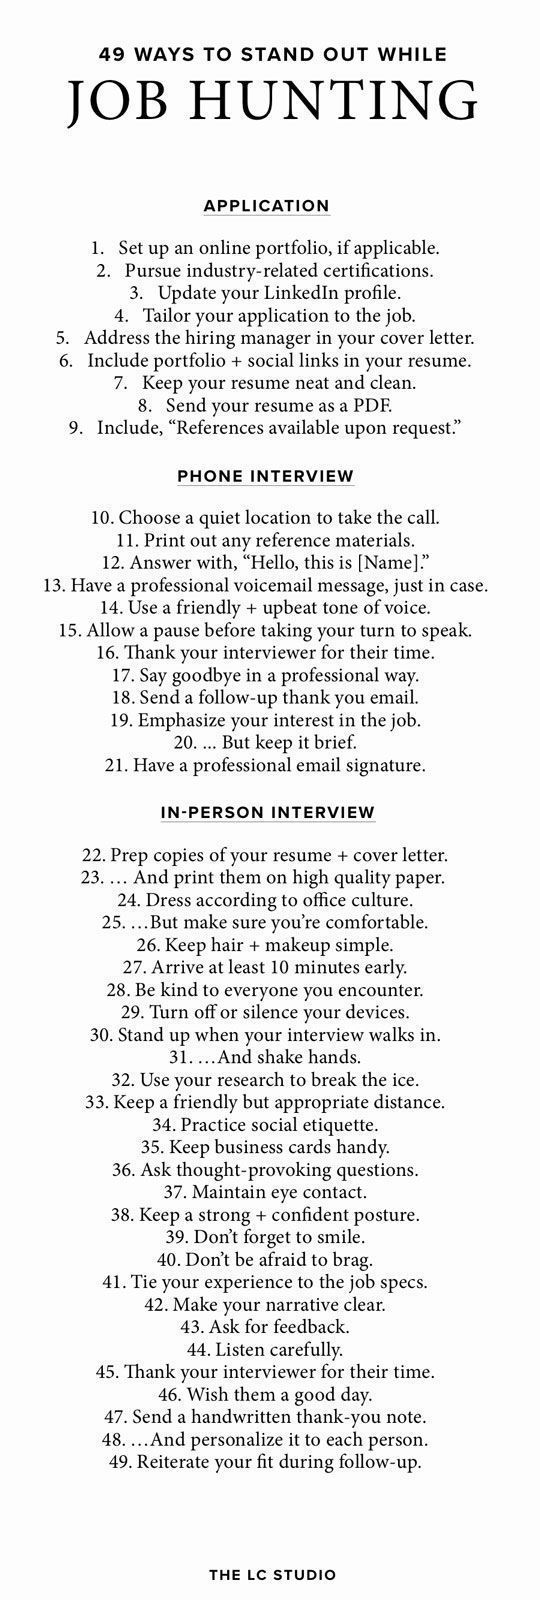 49 Ways To Stand Out During The Interview Process | Hire Me ...